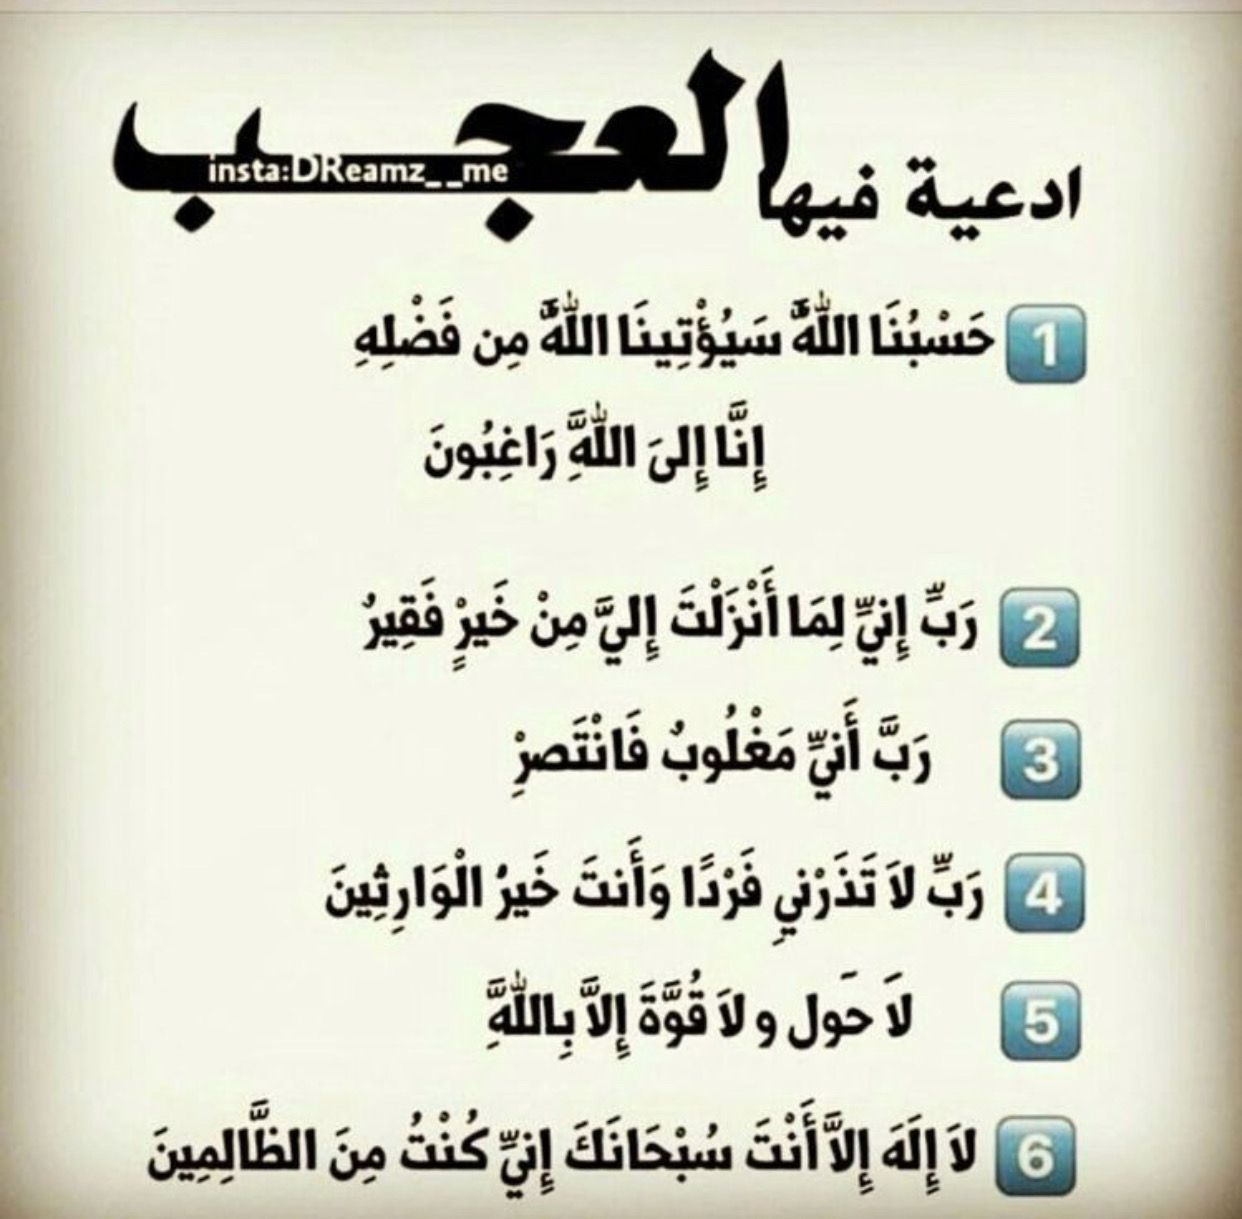 Pin By Saba Hashem On اذكارات Quran Quotes Inspirational Islamic Inspirational Quotes Islam Facts